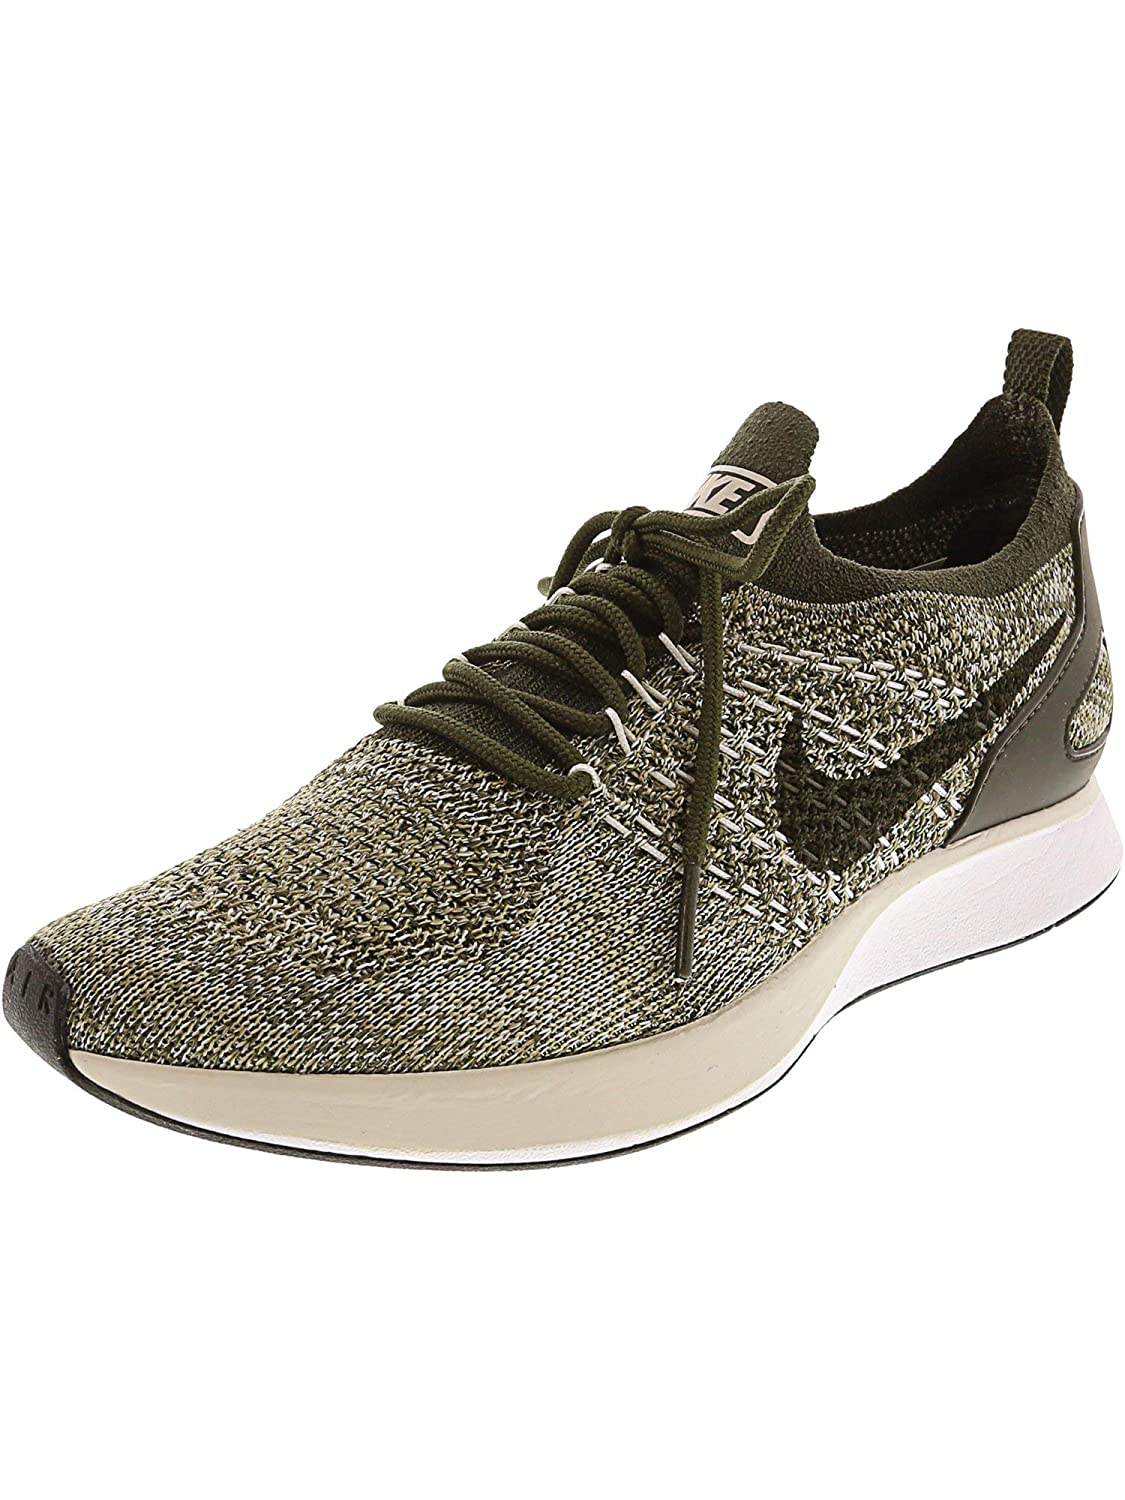 new concept 01571 513df Nike Women  s Air Zoom Mariah Flyknit Racer Trainers